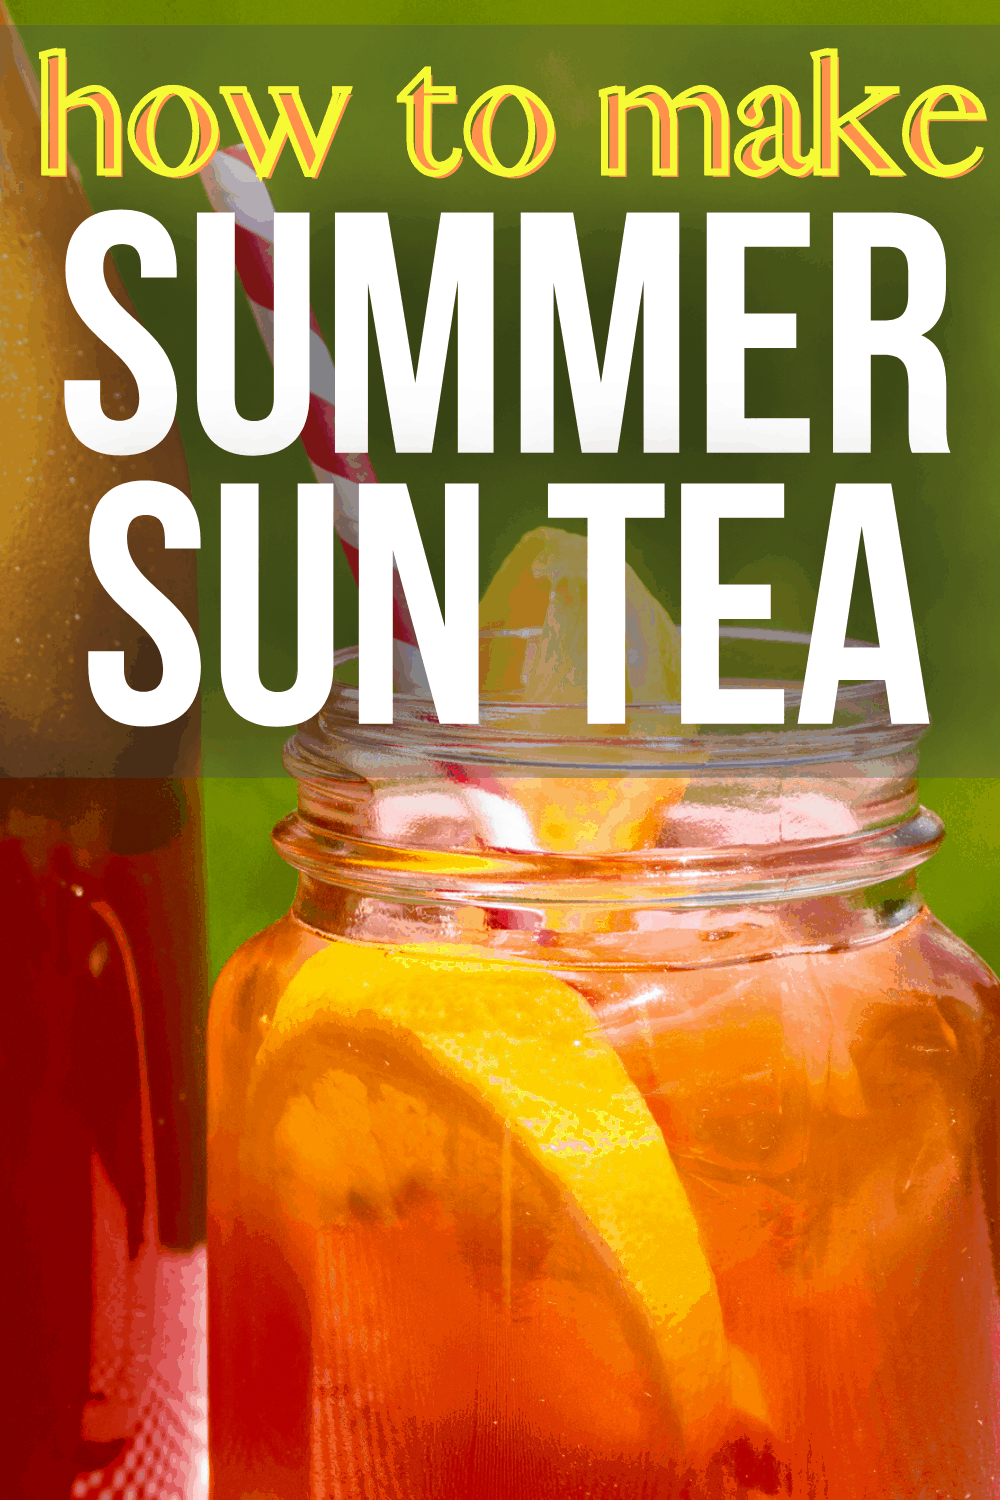 how to make summer sun tea text over image of sun tea glass sitting outdoors